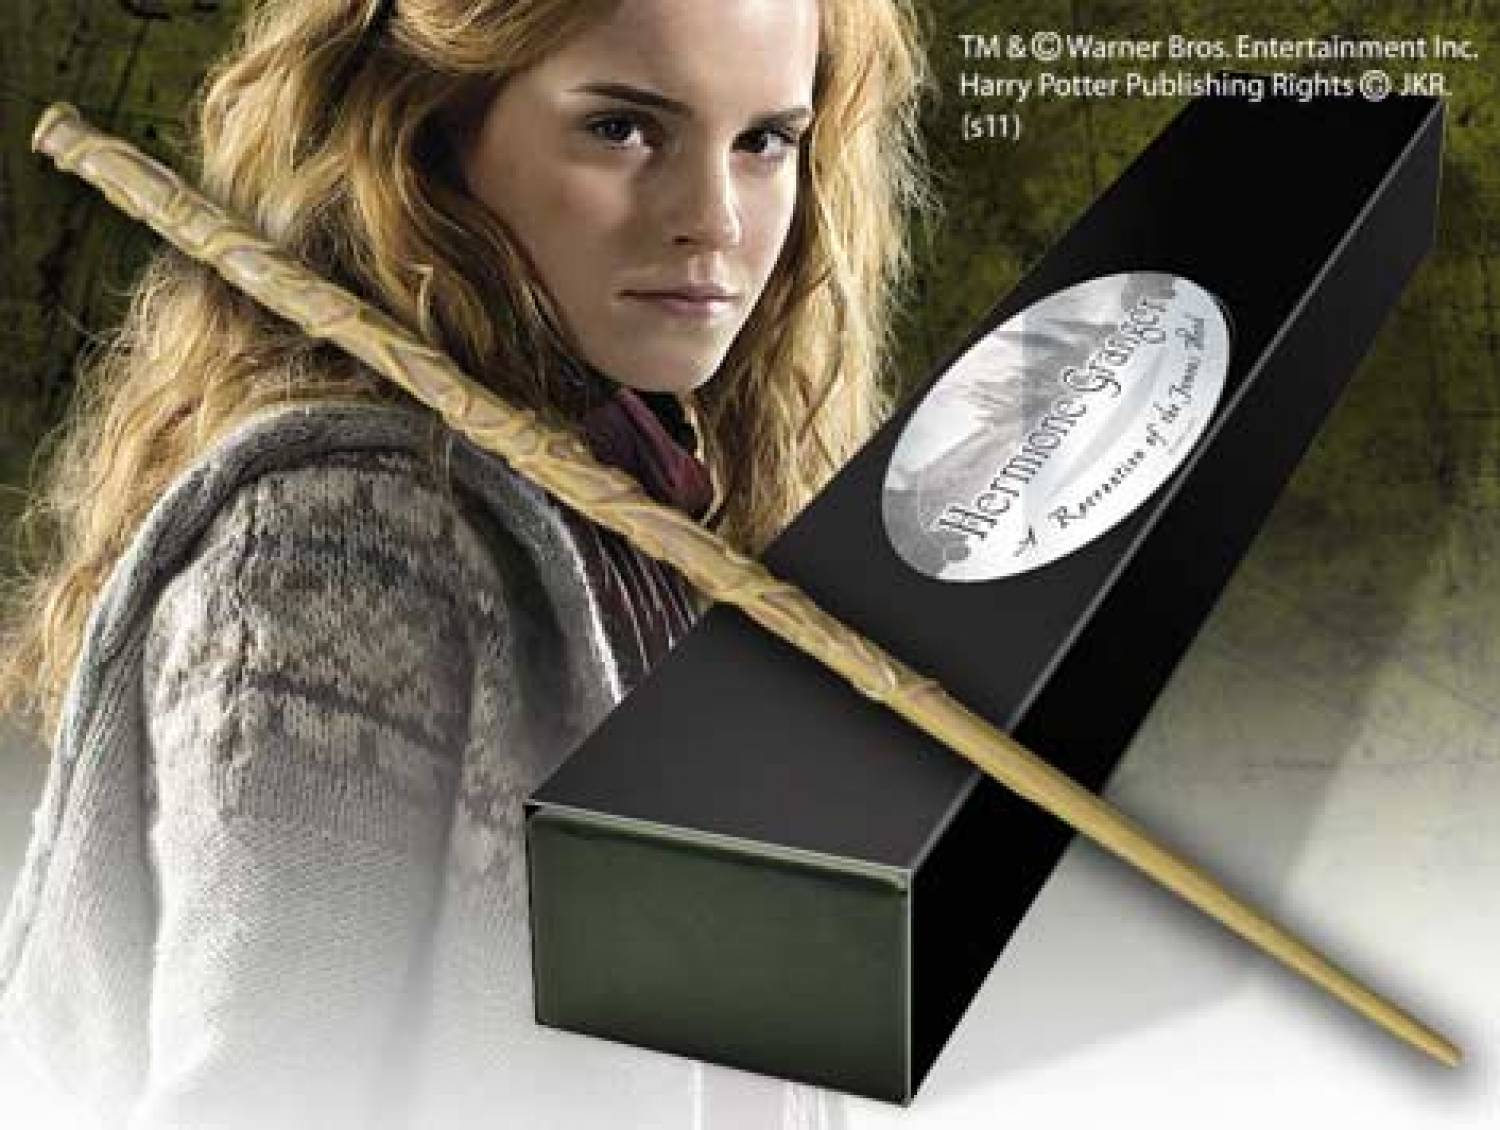 Harry potter the deathly hallows hermione granger 39 s wand for Harry potter and the deathly hallows wand